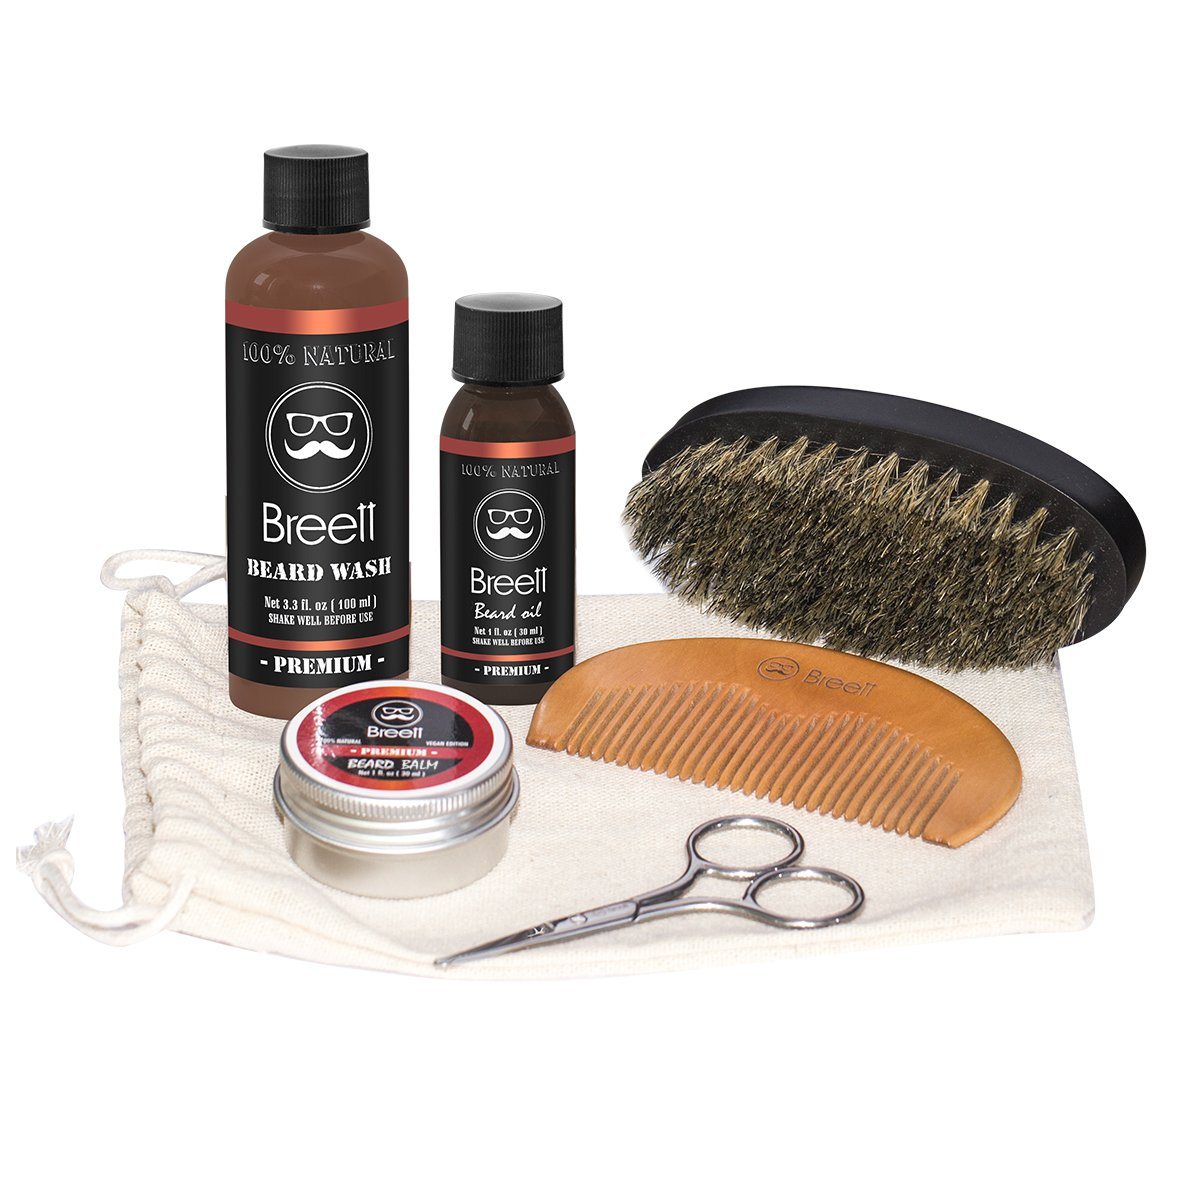 6 Set Beard Care Gift Kit, Beard Oil, Beard Balm, Handmade Wood Comb,100% Pure Boar Bristles Brush, Stainless Barber Sissors, Beard Shampoo, Mustache Grooming Trimming Set for Men Breett